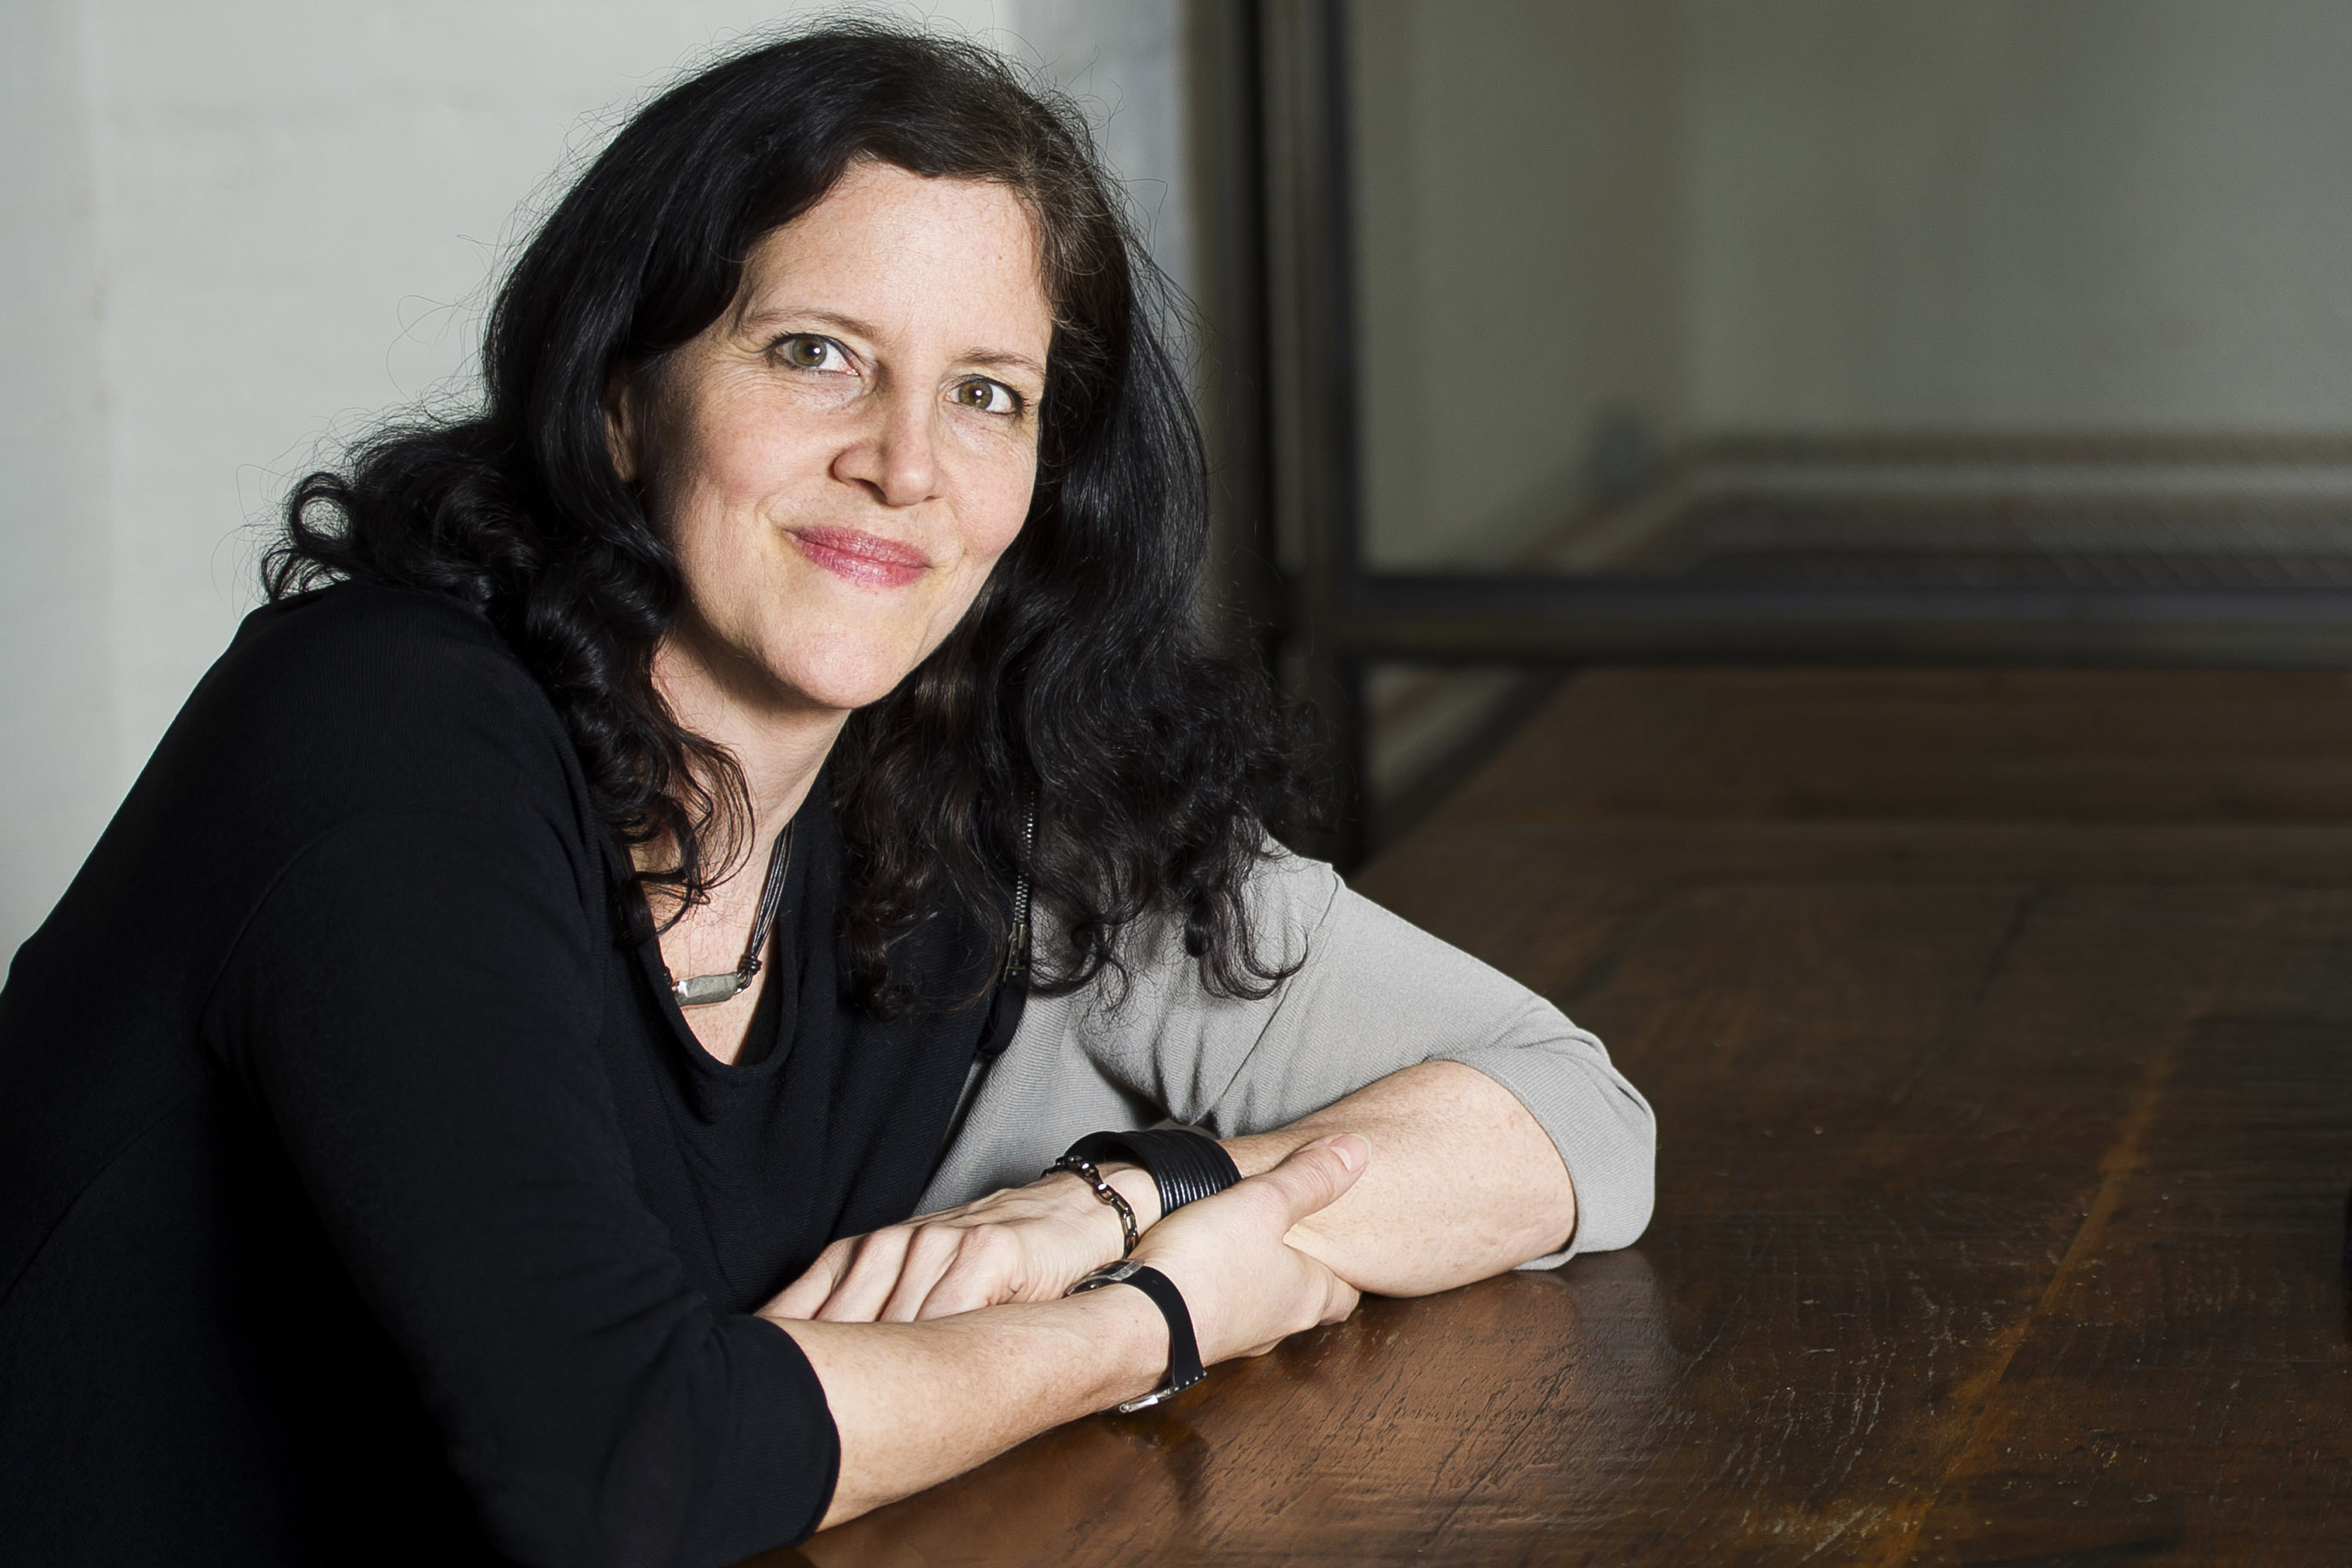 This April 16, 2014 photo shows Pulitzer Prize and Polk Award winner Laura Poitras in New York to promote her documentary film  1971,  premiering Friday at the Tribeca Film Festival. (Photo by Charles Sykes/Invision/AP)